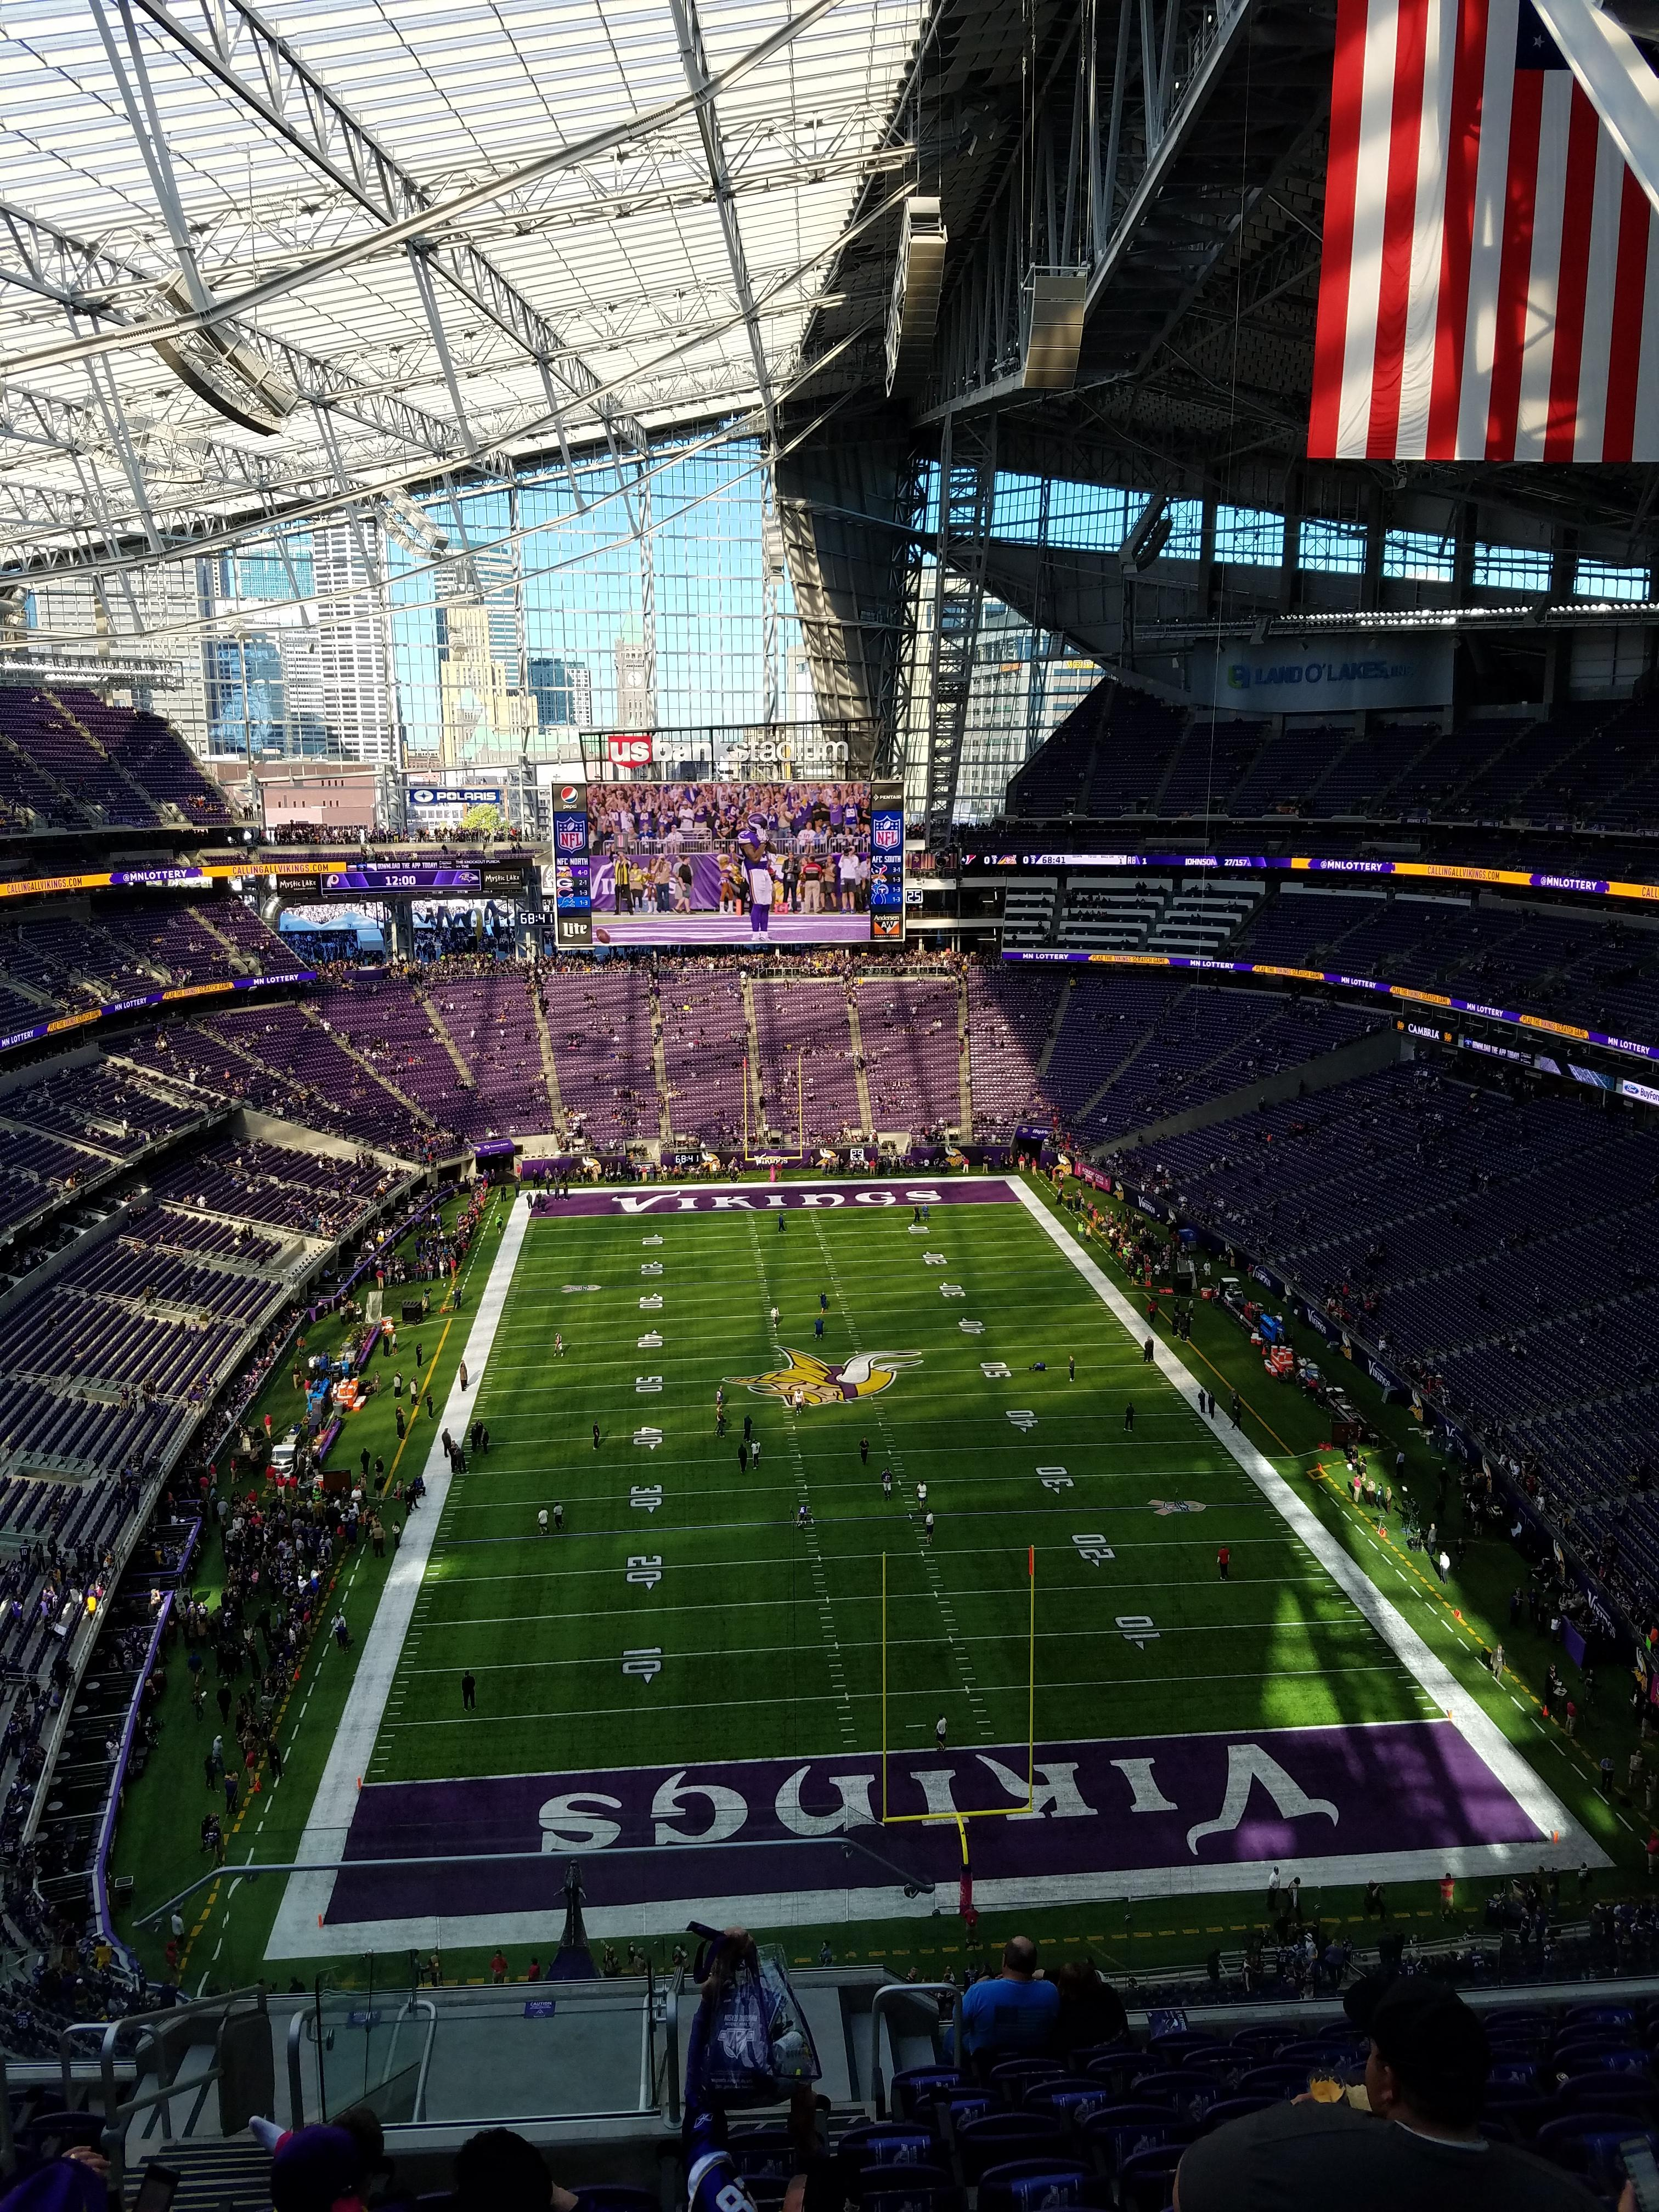 U.S. Bank Stadium Section 327 Row 12 Seat 25